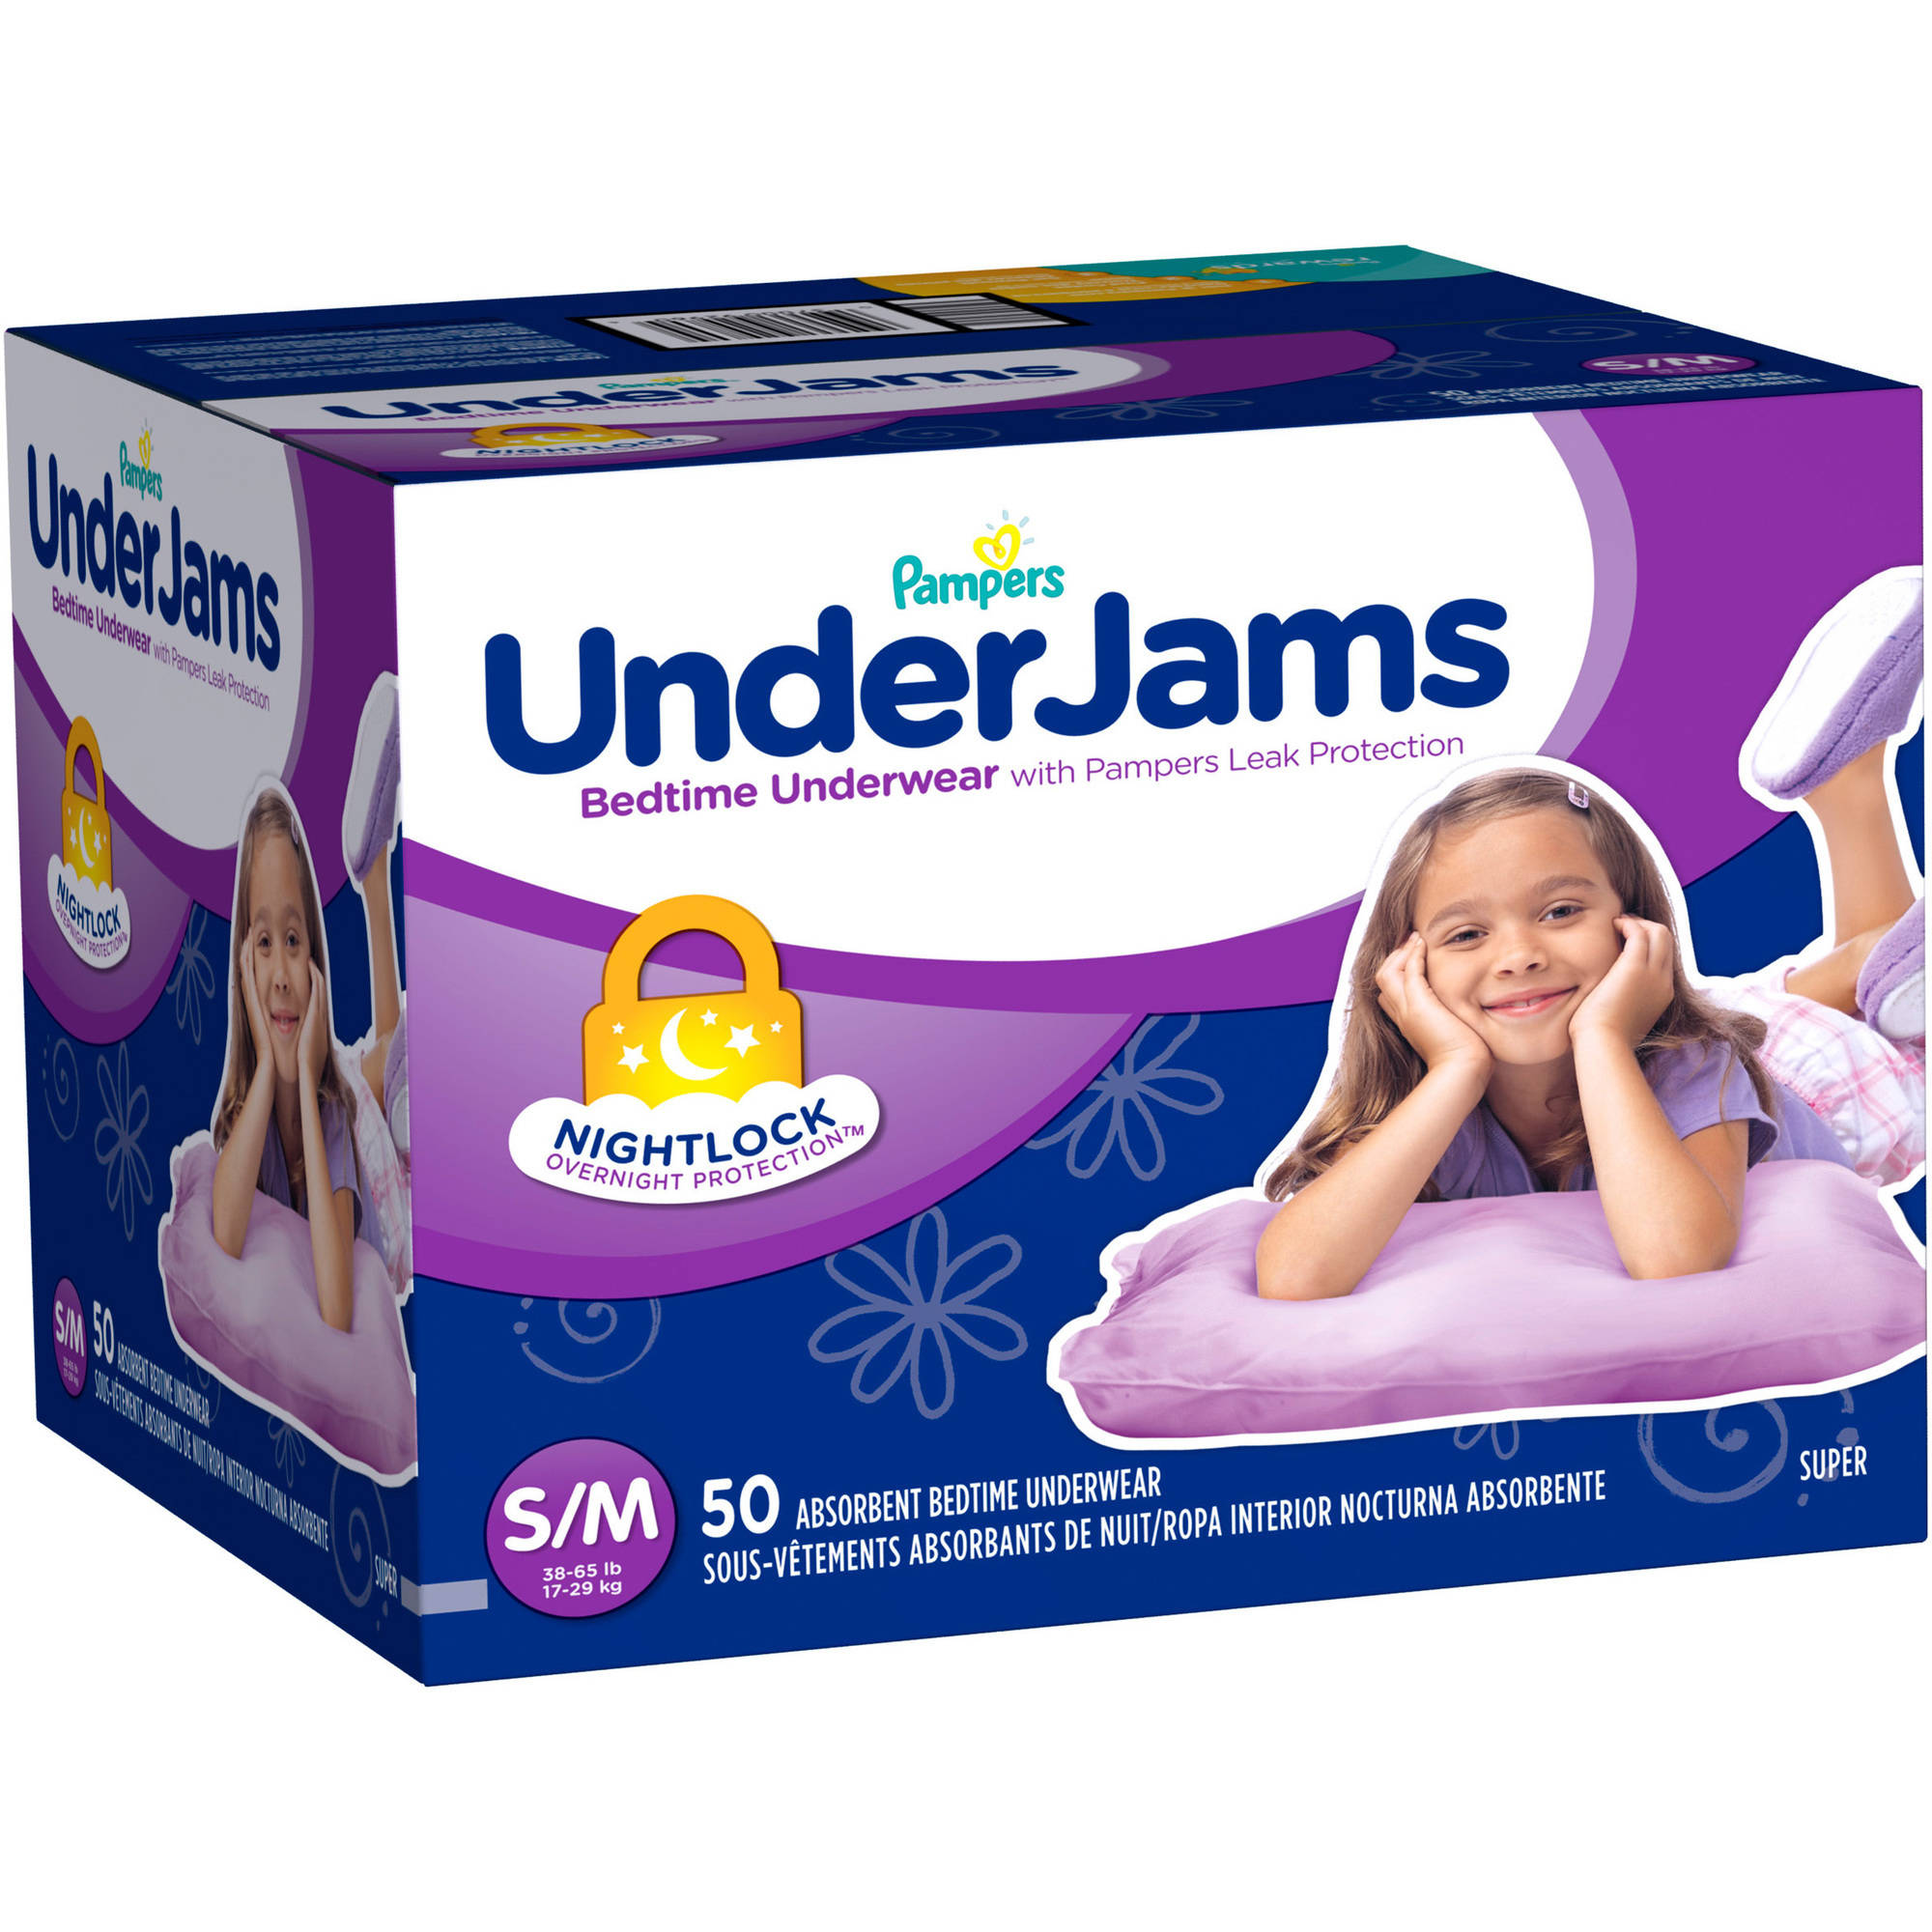 Pampers UnderJams Girls' Bedtime Underwear, Super Pack, (Choose Your Size)